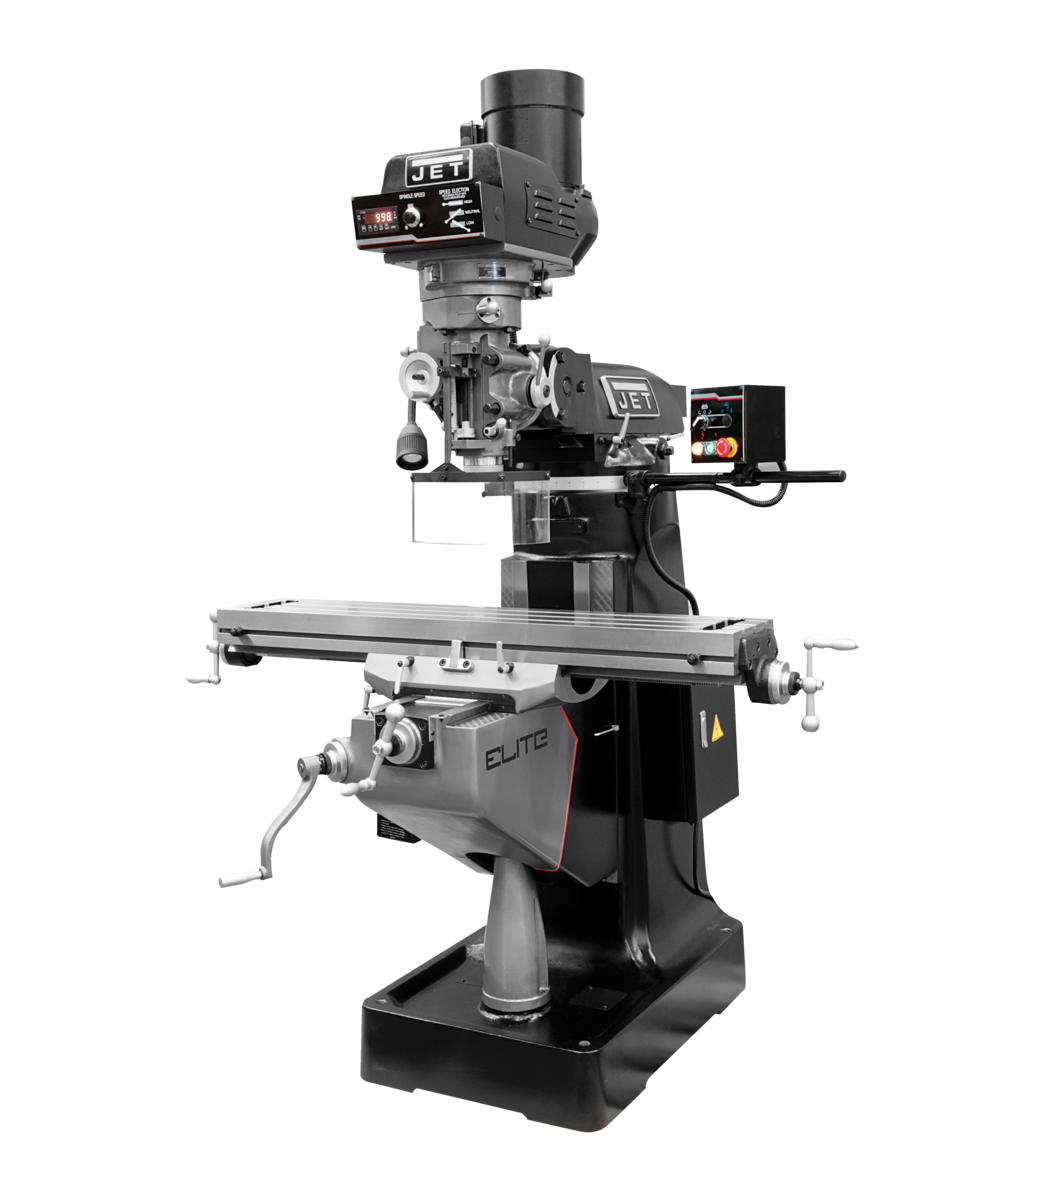 EVS-949 Mill with 3-Axis ACU-RITE 203 (Quill) DRO and X, Y-Axis JET Powerfeeds and USA Made Air Draw Bar